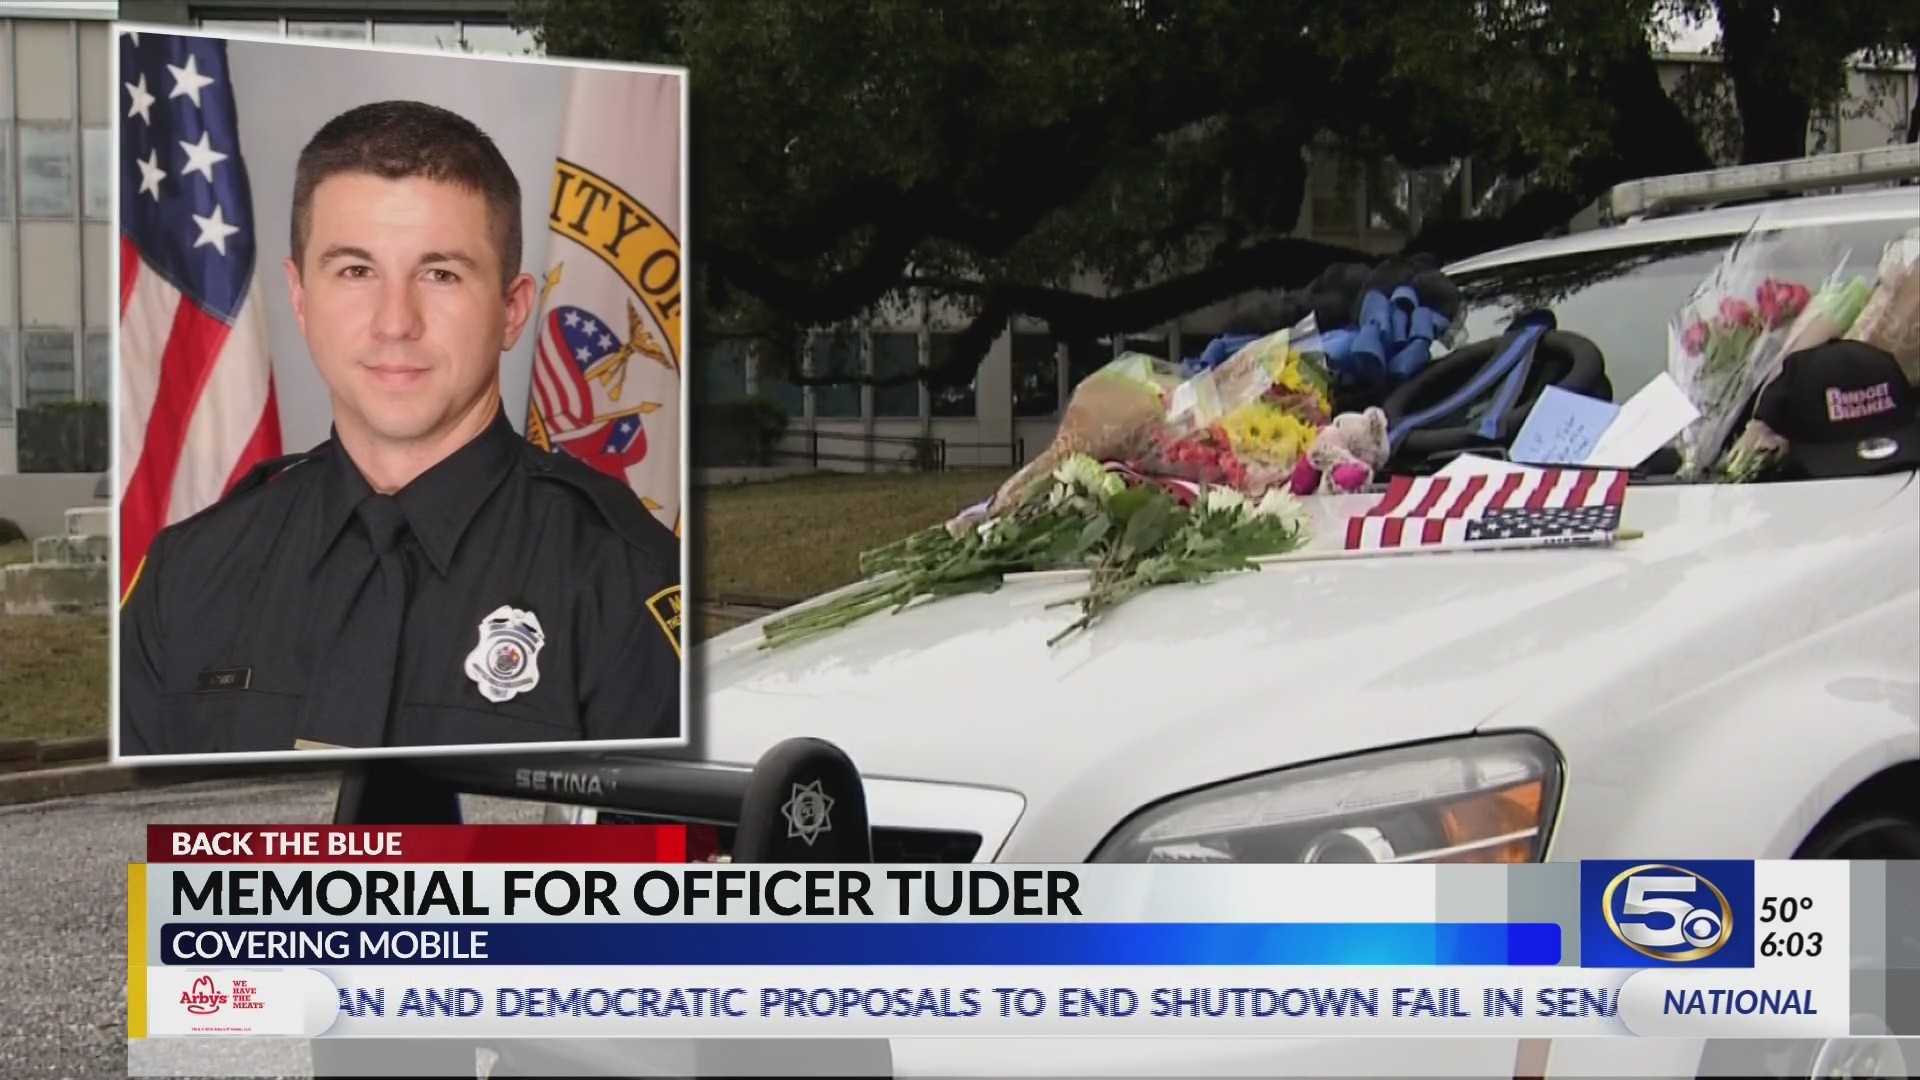 VIDEO: Community members leave mementos on patrol car in memory of Officer Tuder